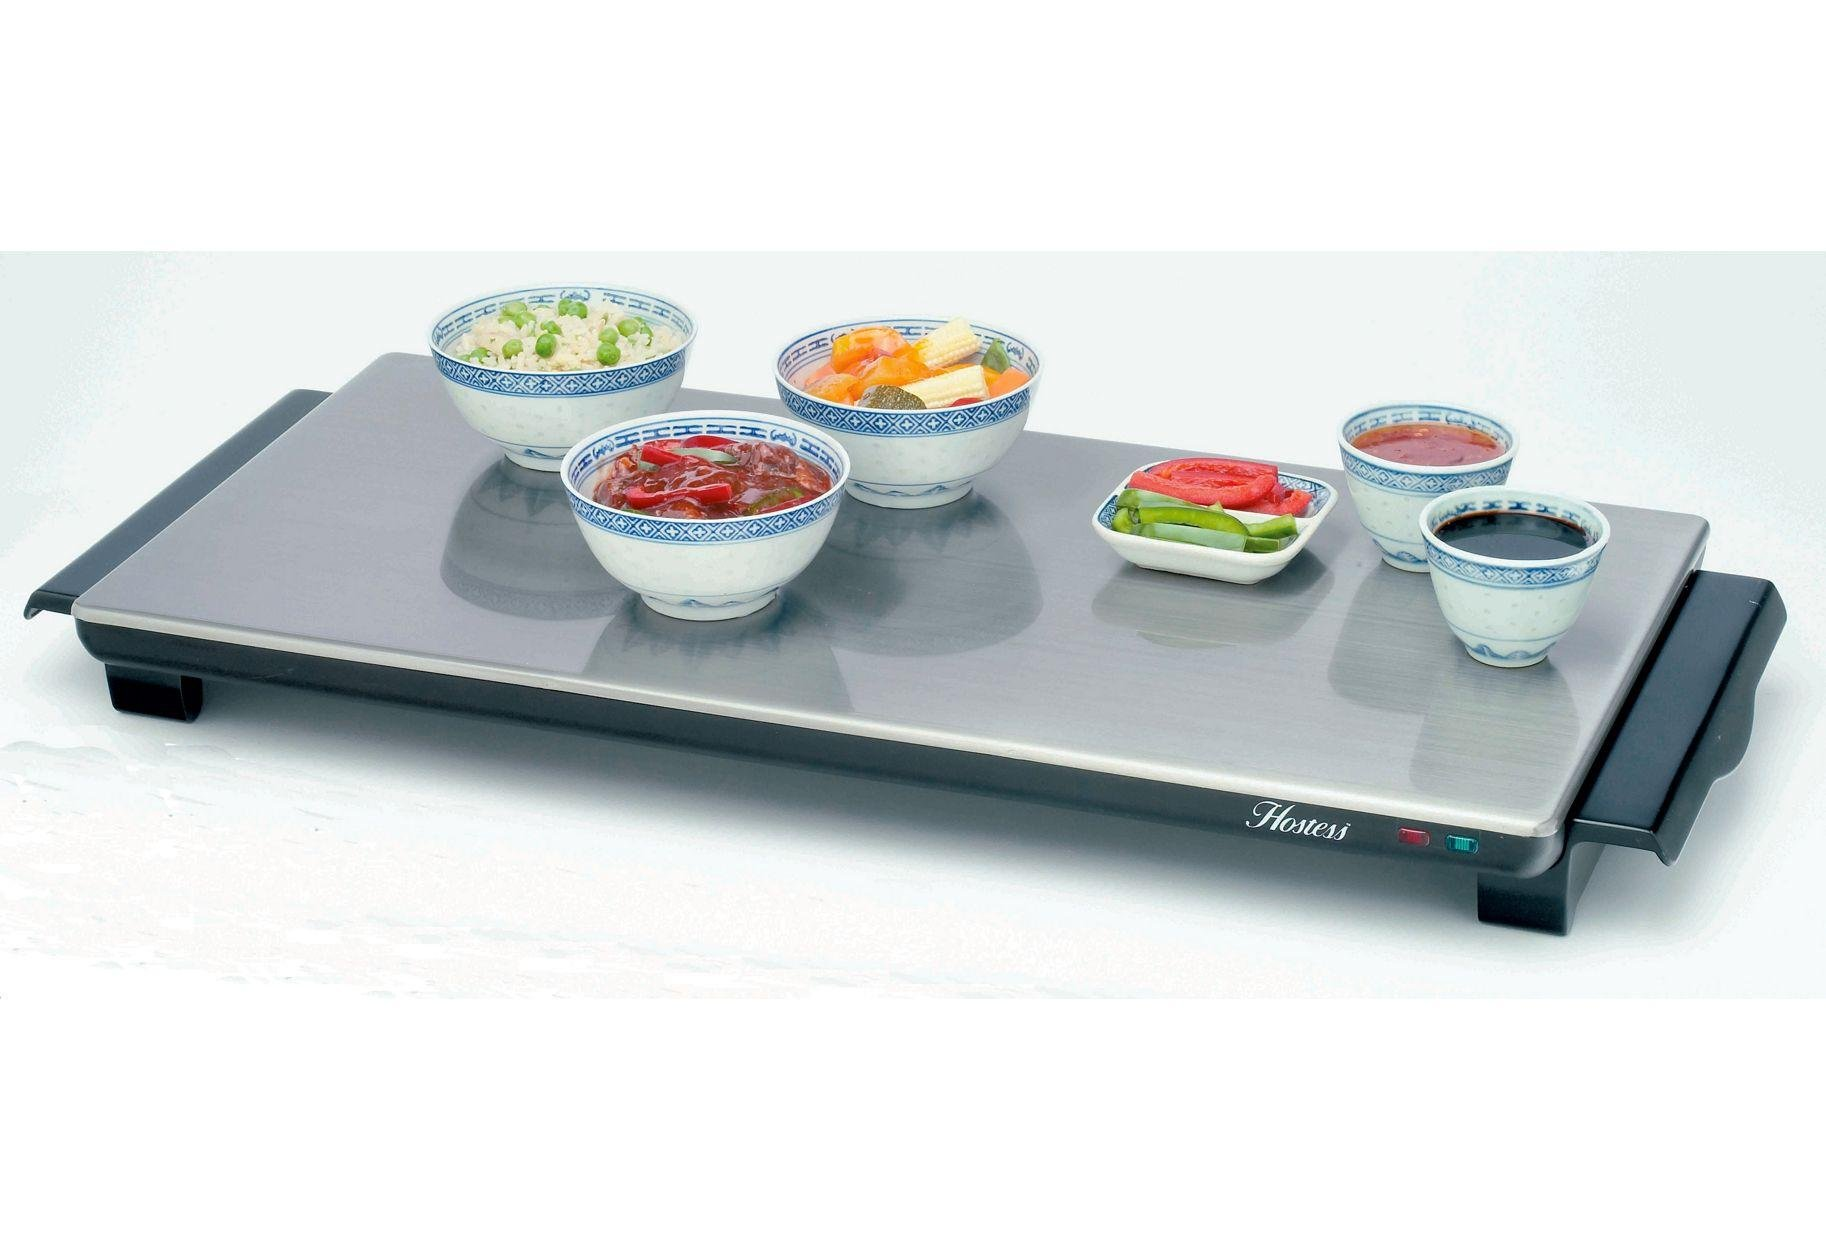 Image of Hostess HT6030 Hot Tray - Large.